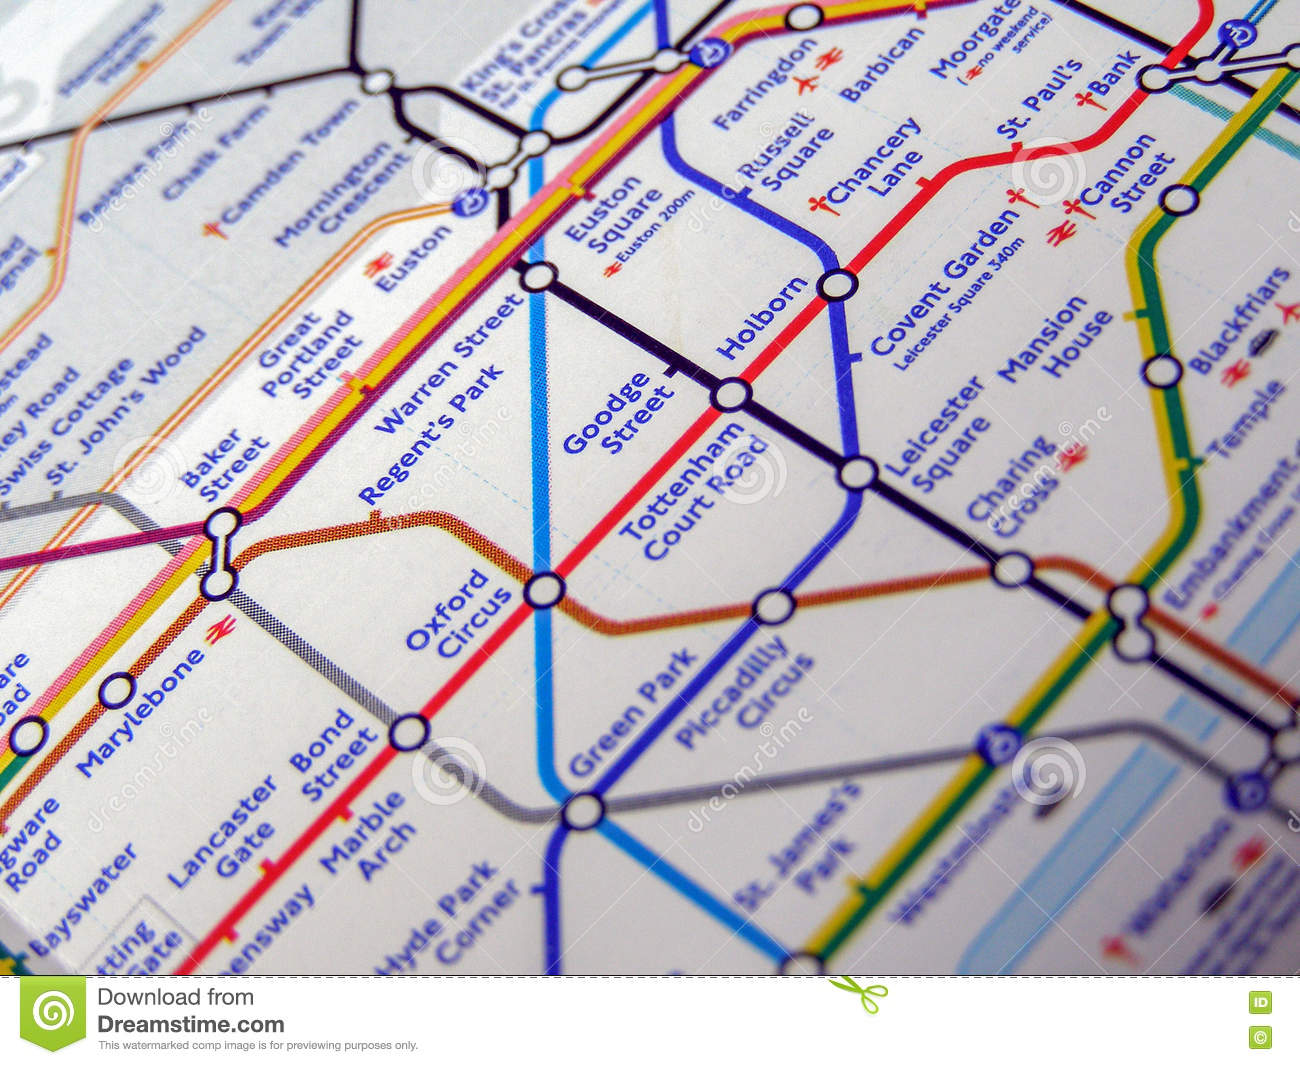 Map Of London England And Surrounding Area.Tube Map Of London Underground Editorial Stock Photo Image Of Tube